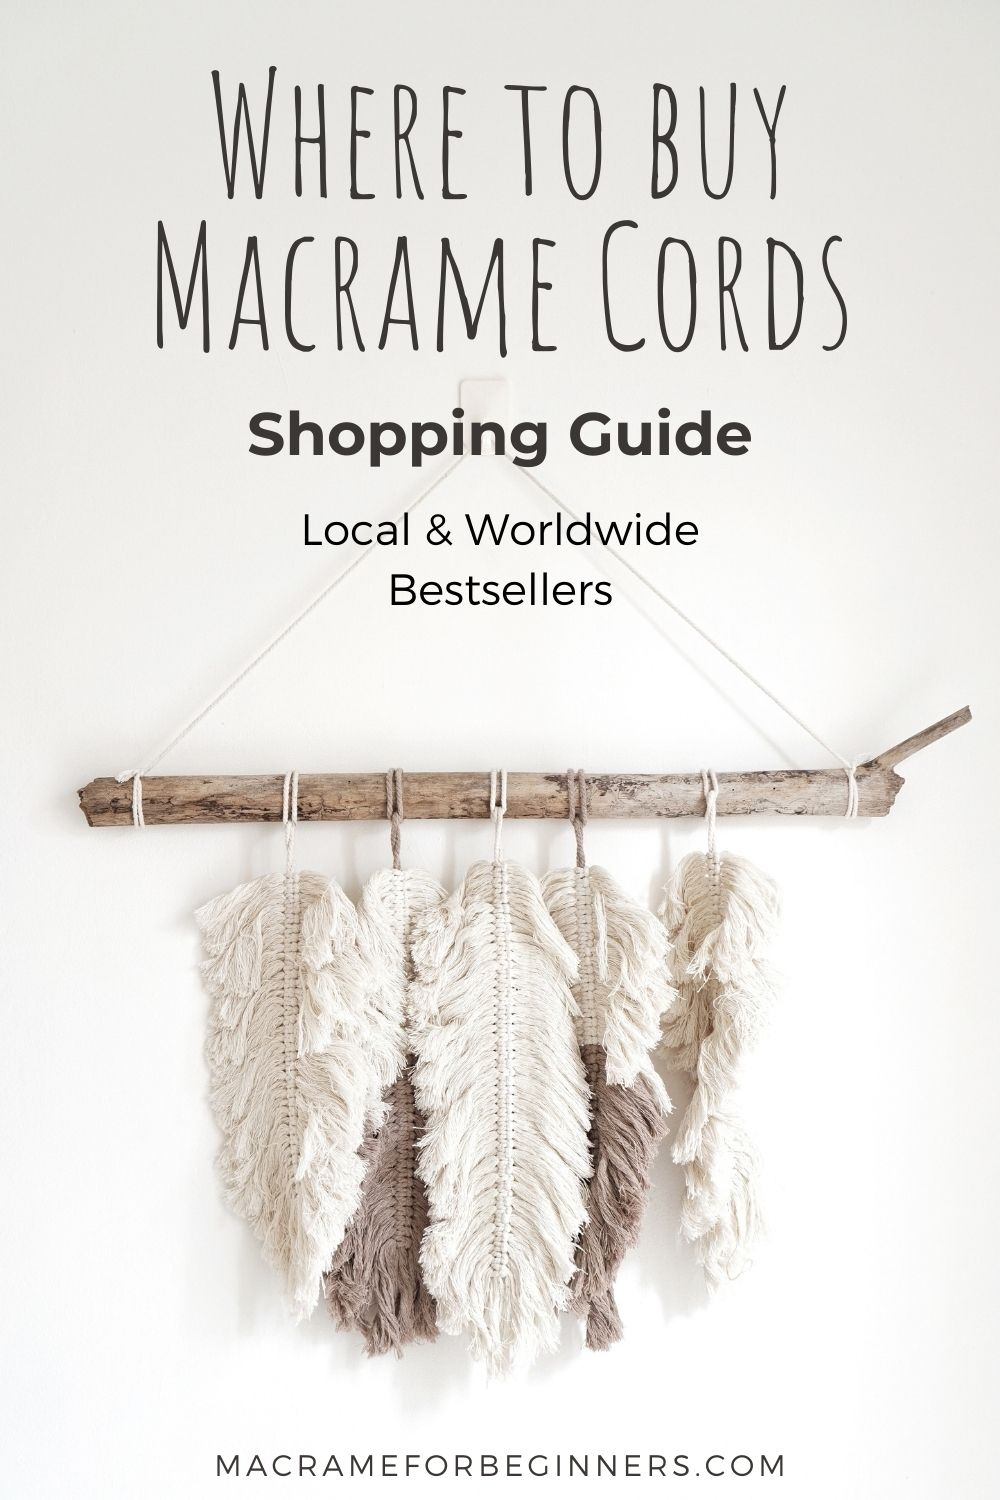 Where to buy Macrame Cords - Shopping Guide with Local and Worldwide Bestsellers